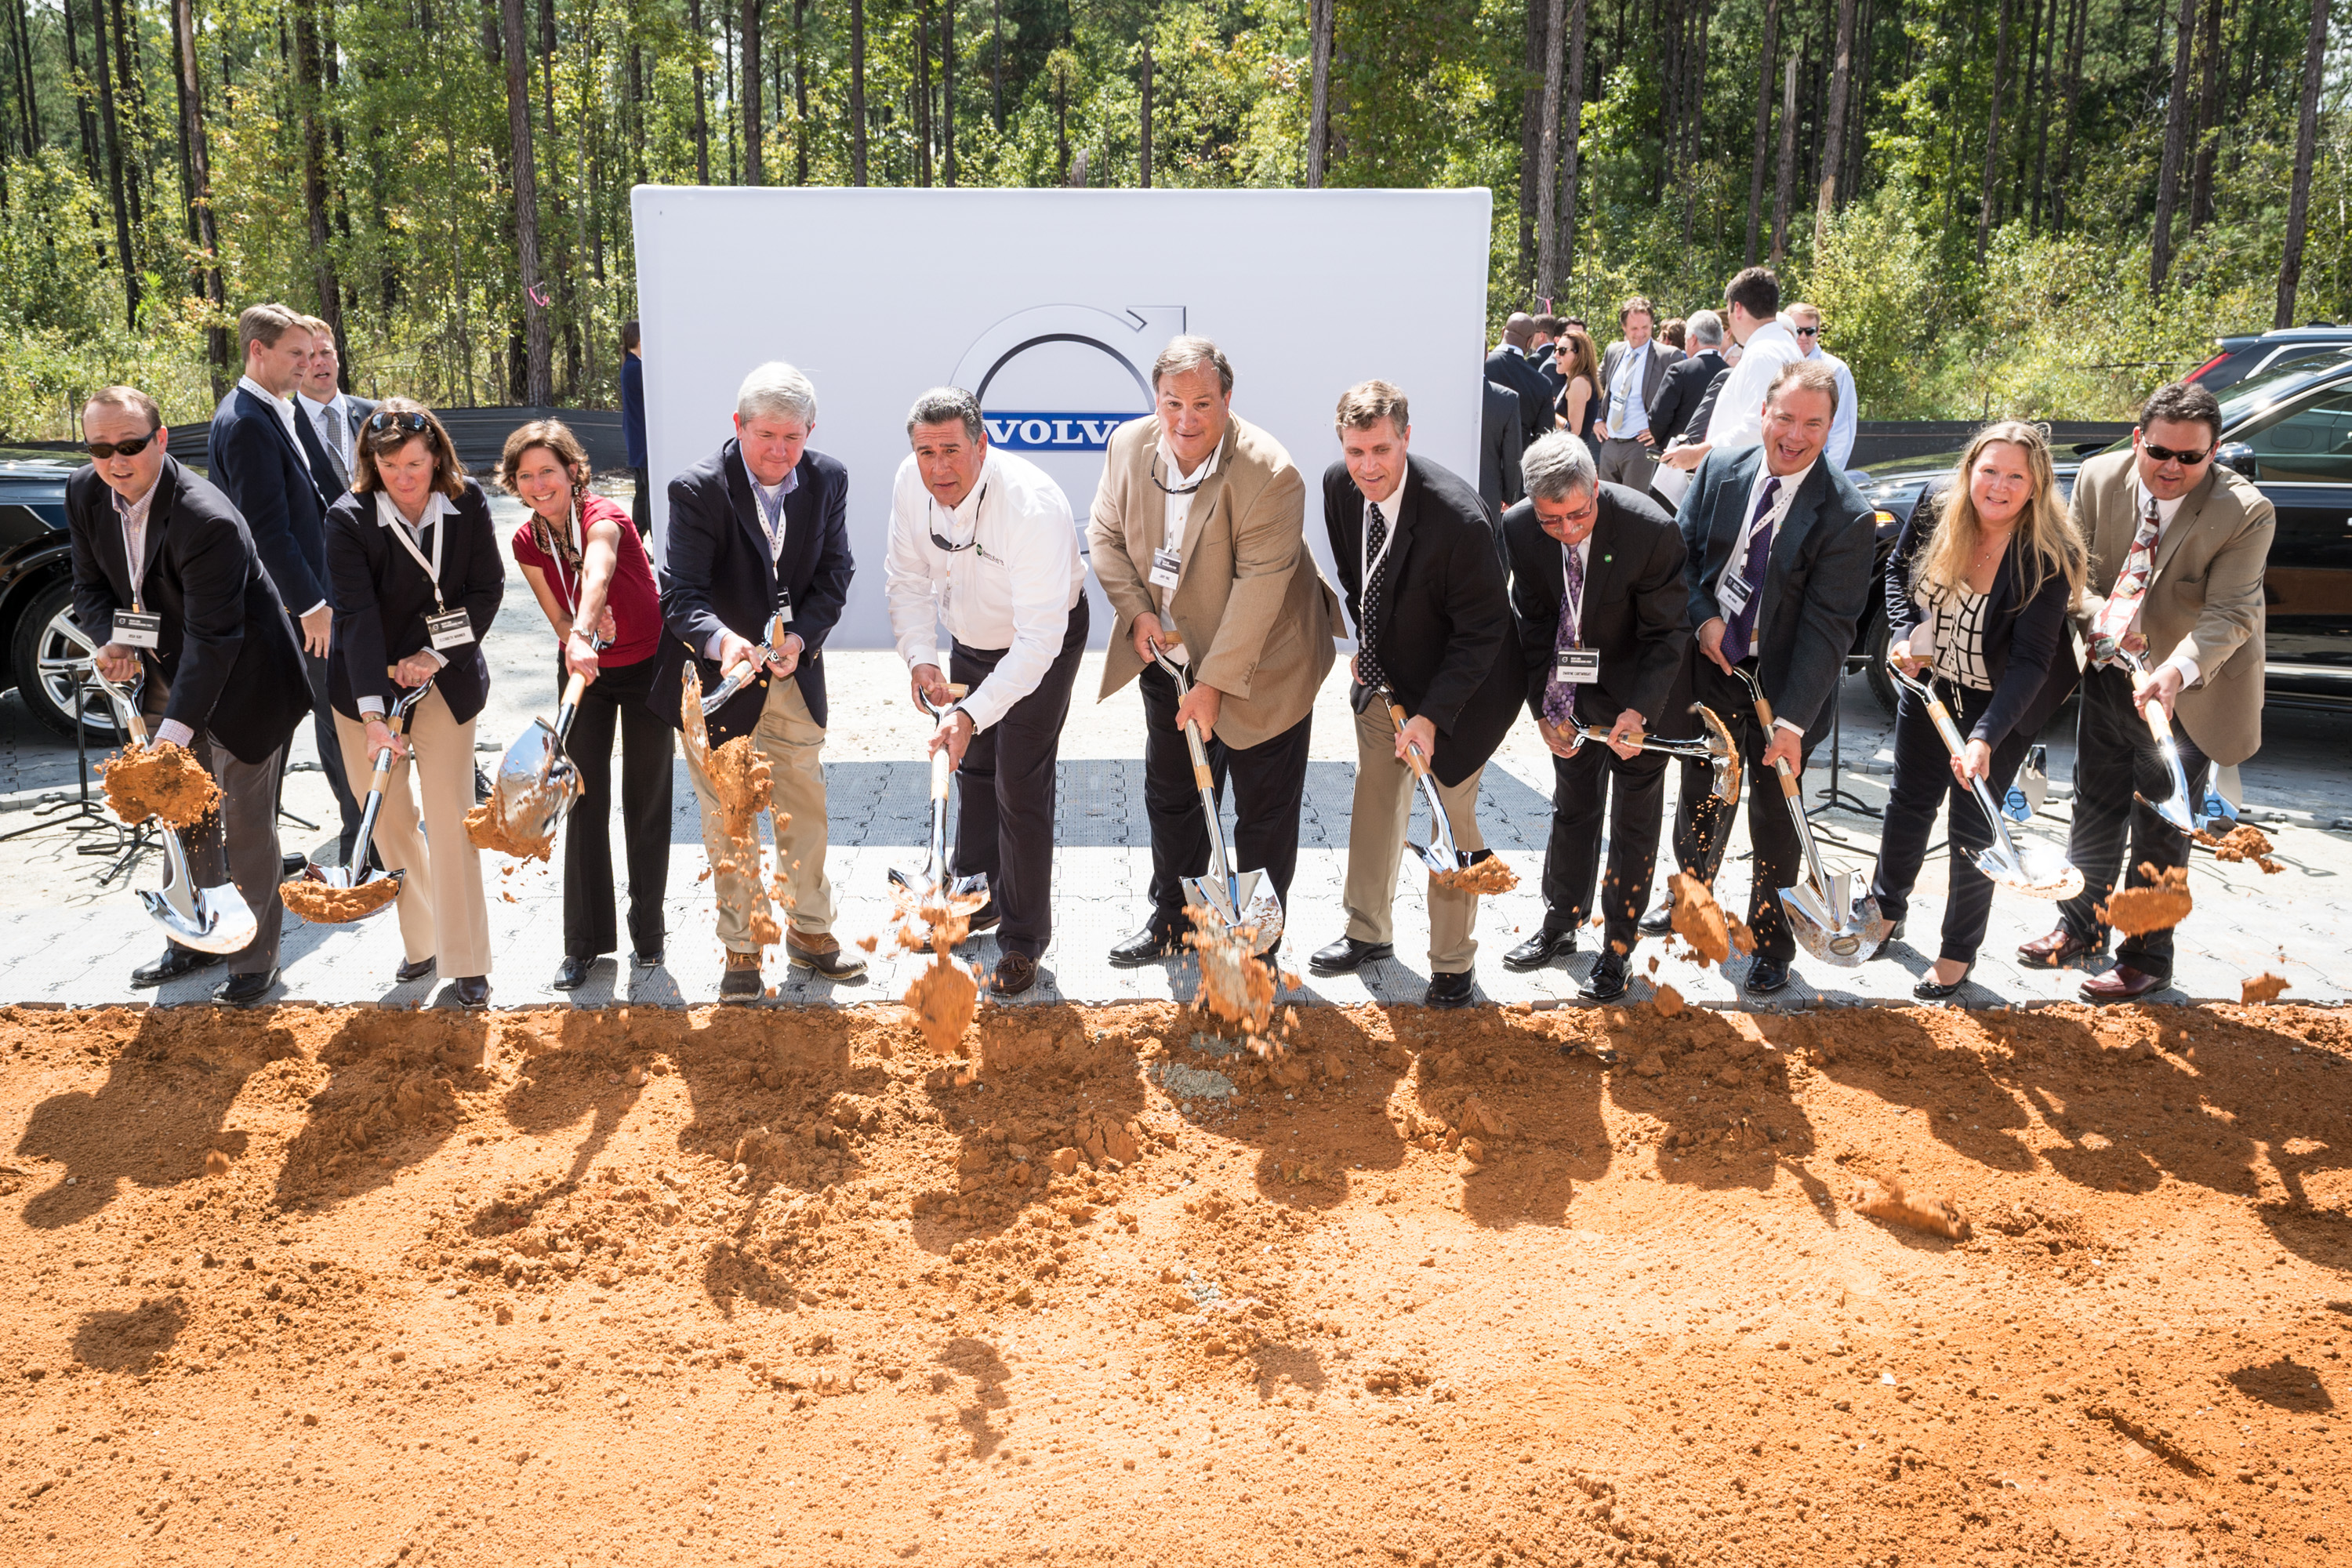 Volvo chooses South Carolina for auto plant